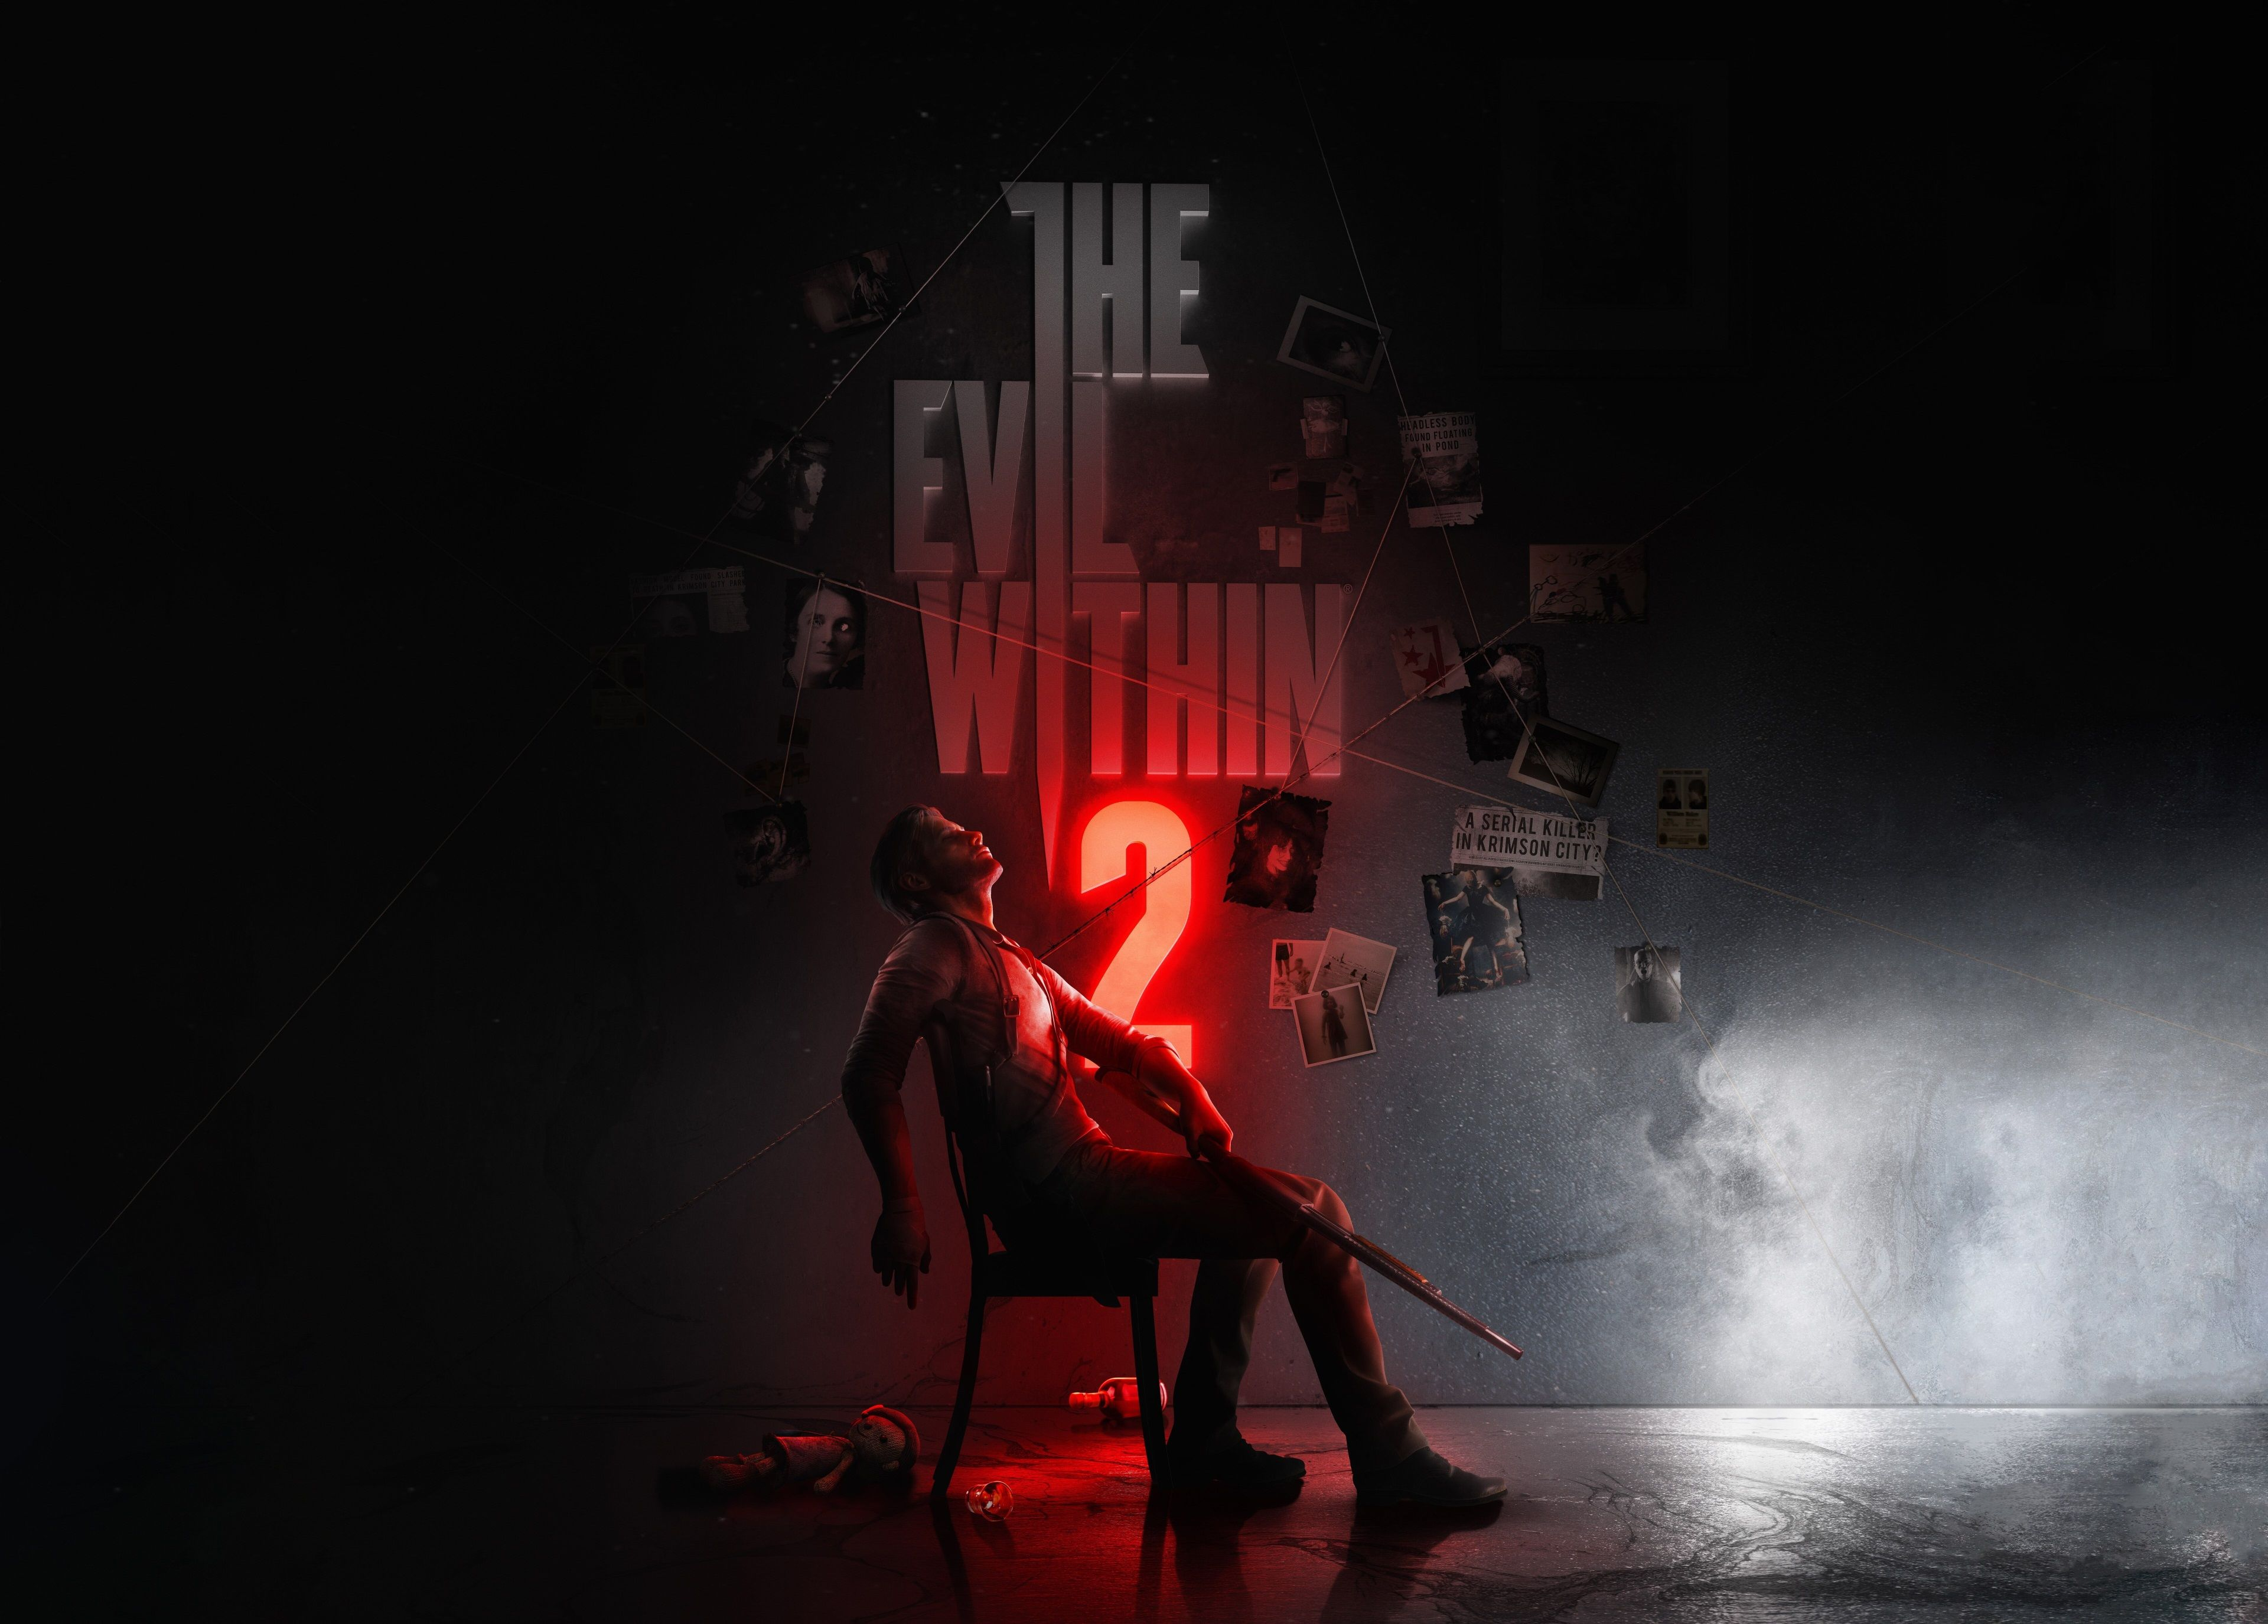 3840x2750 the evil within 2 4k hd quality desktop